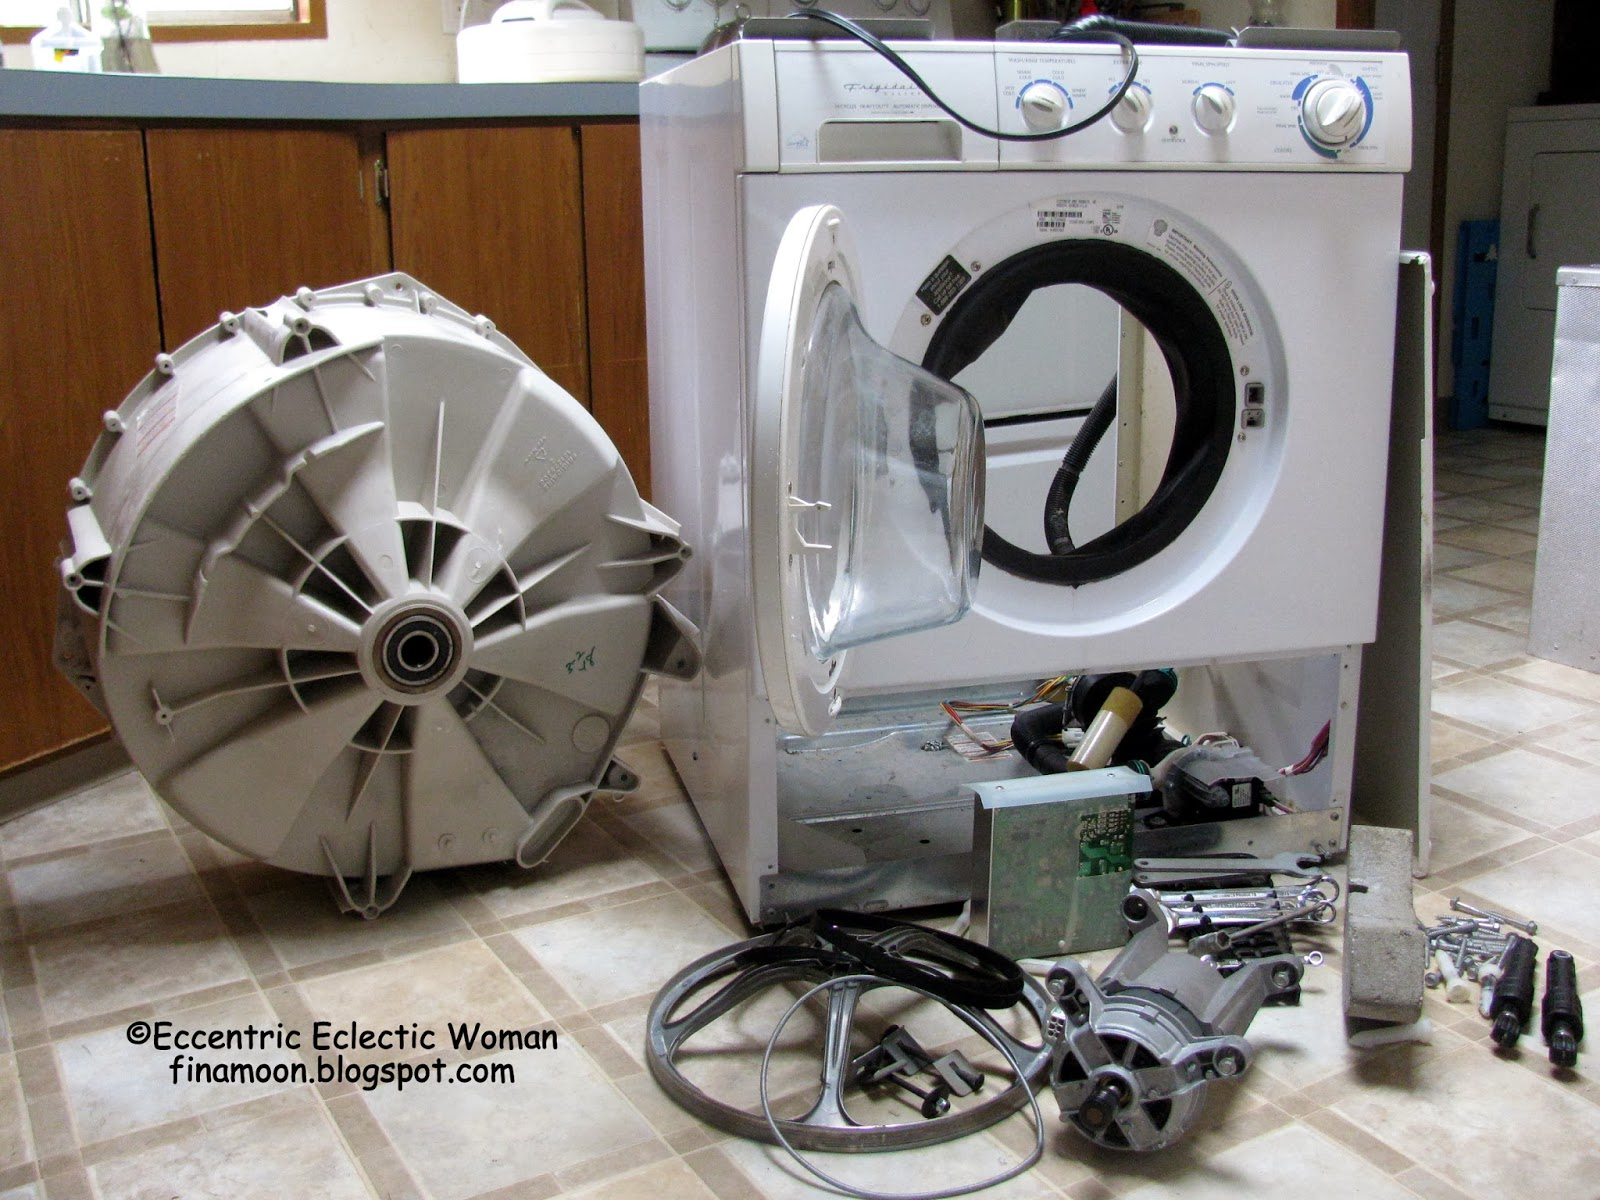 Eccentric Eclectic Woman Diy Upcycled Ideas For Washing